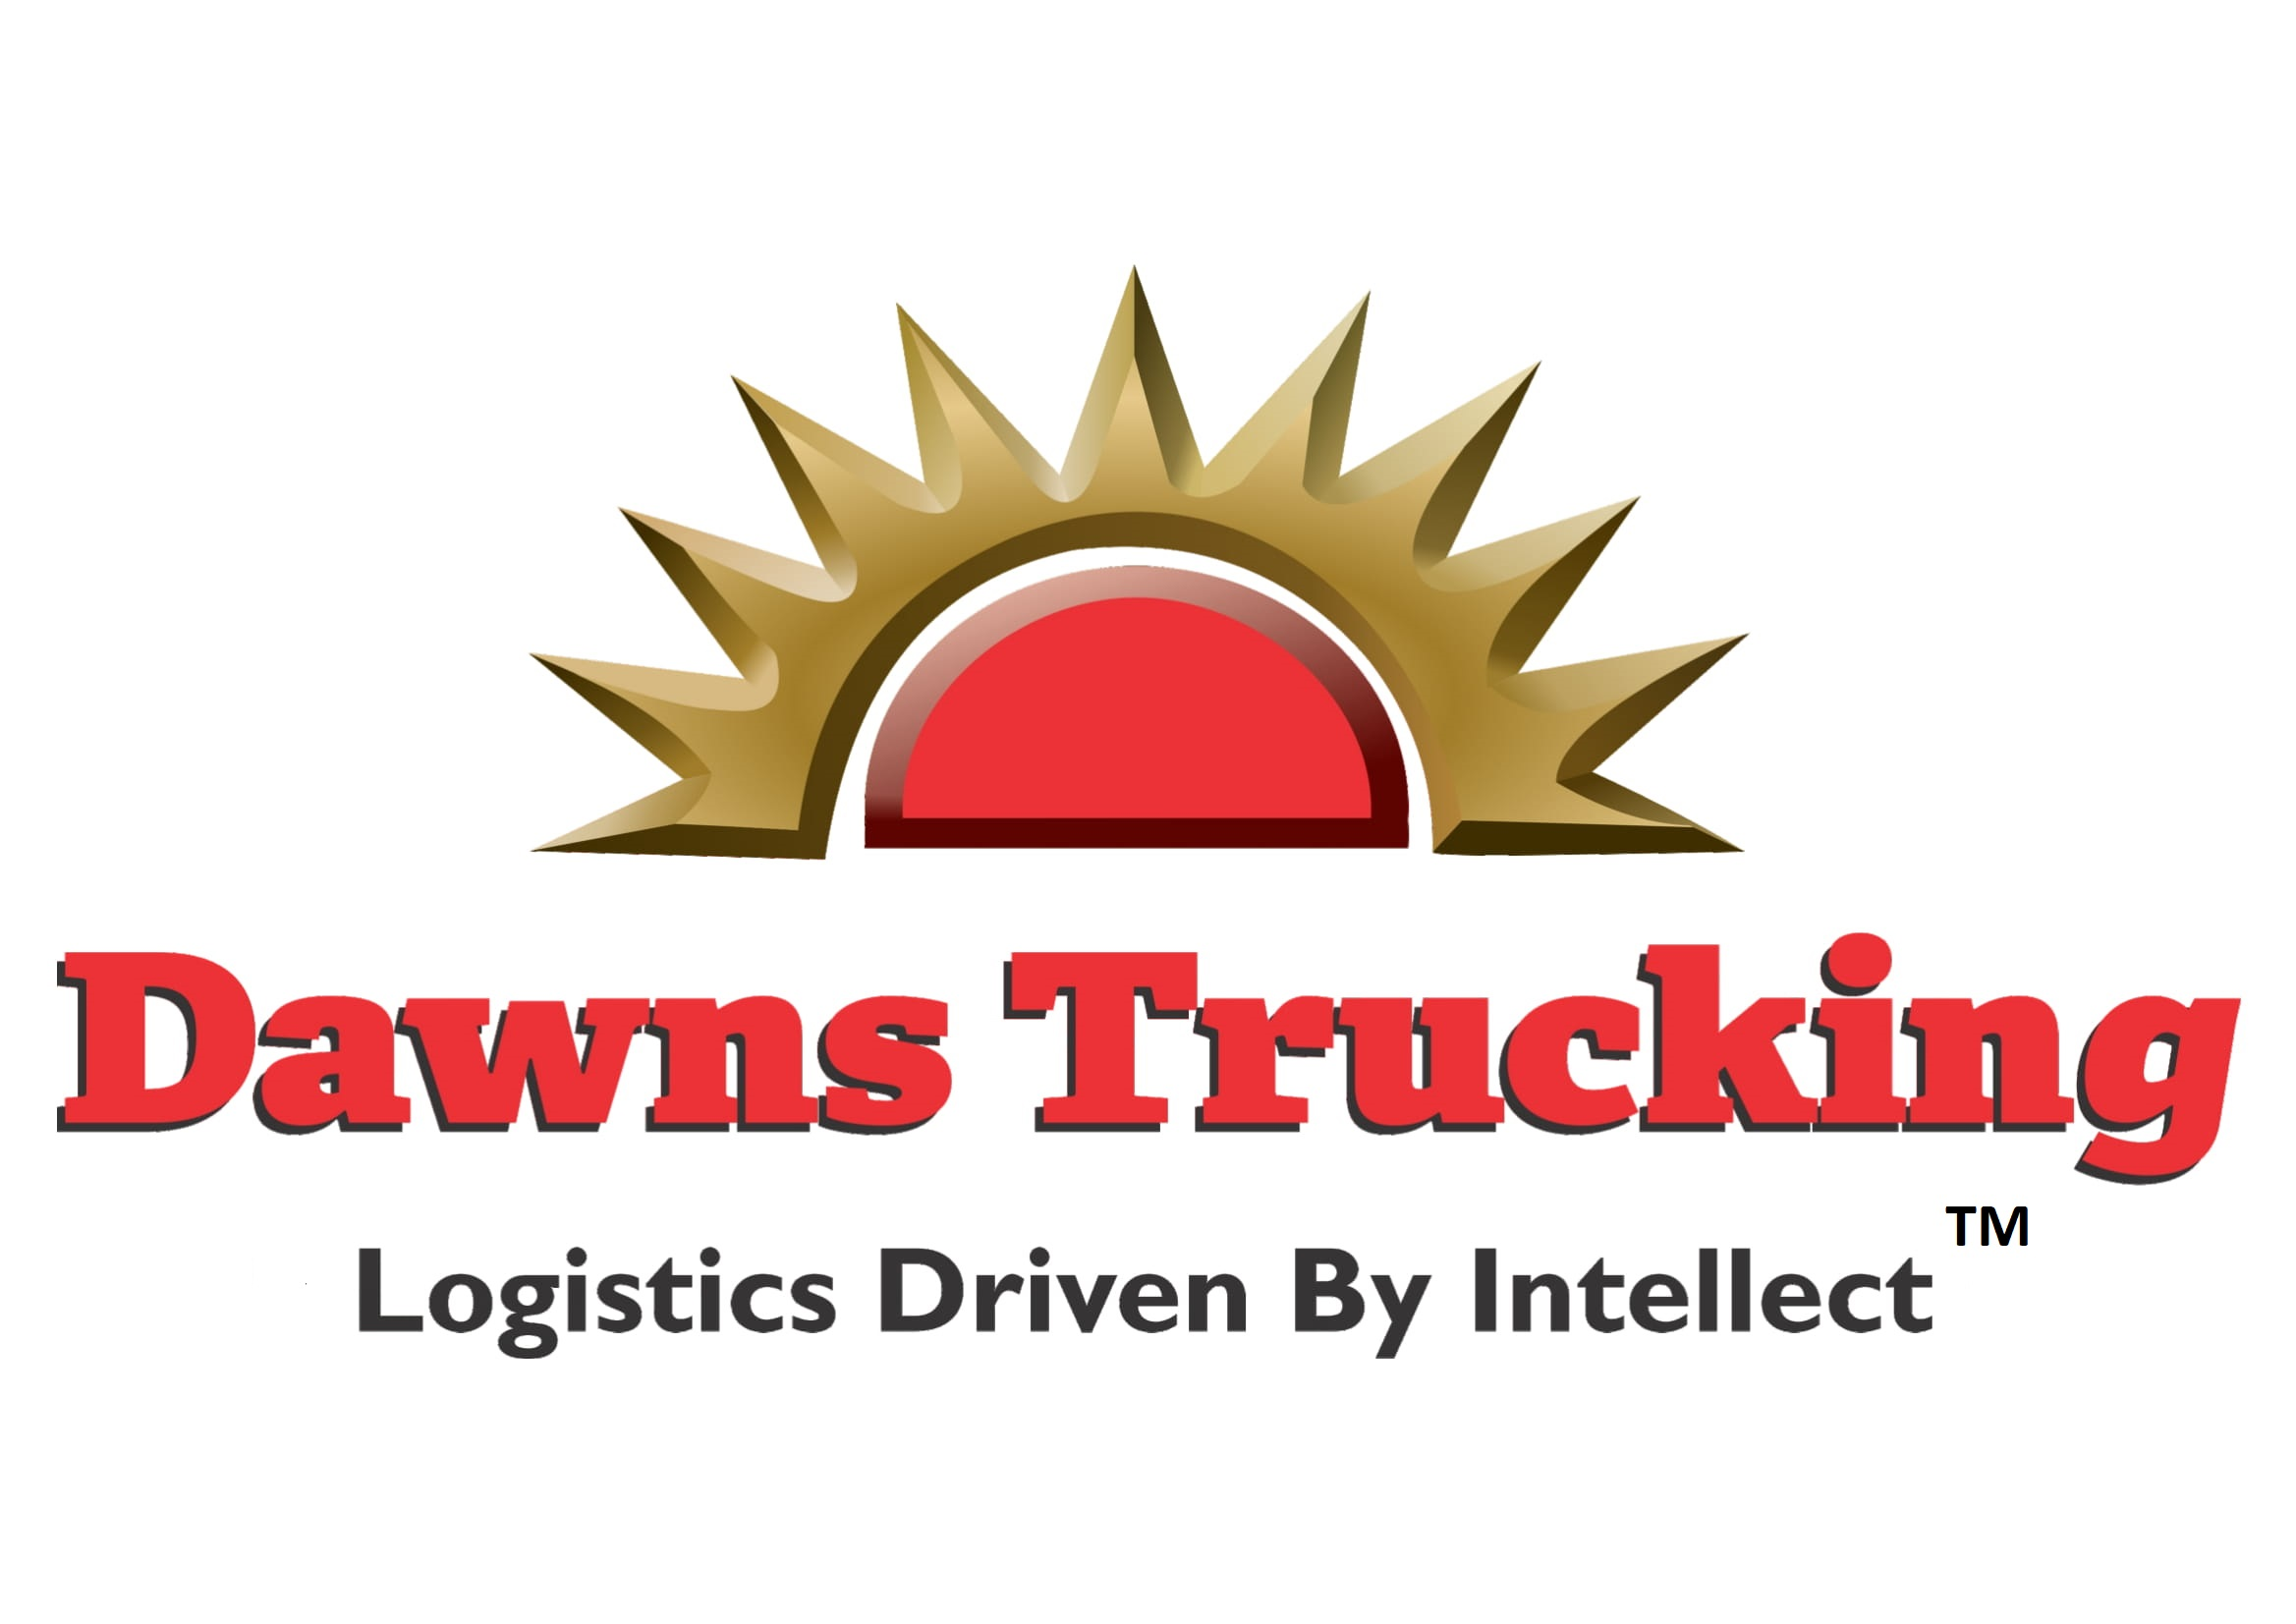 Dawns Trucking